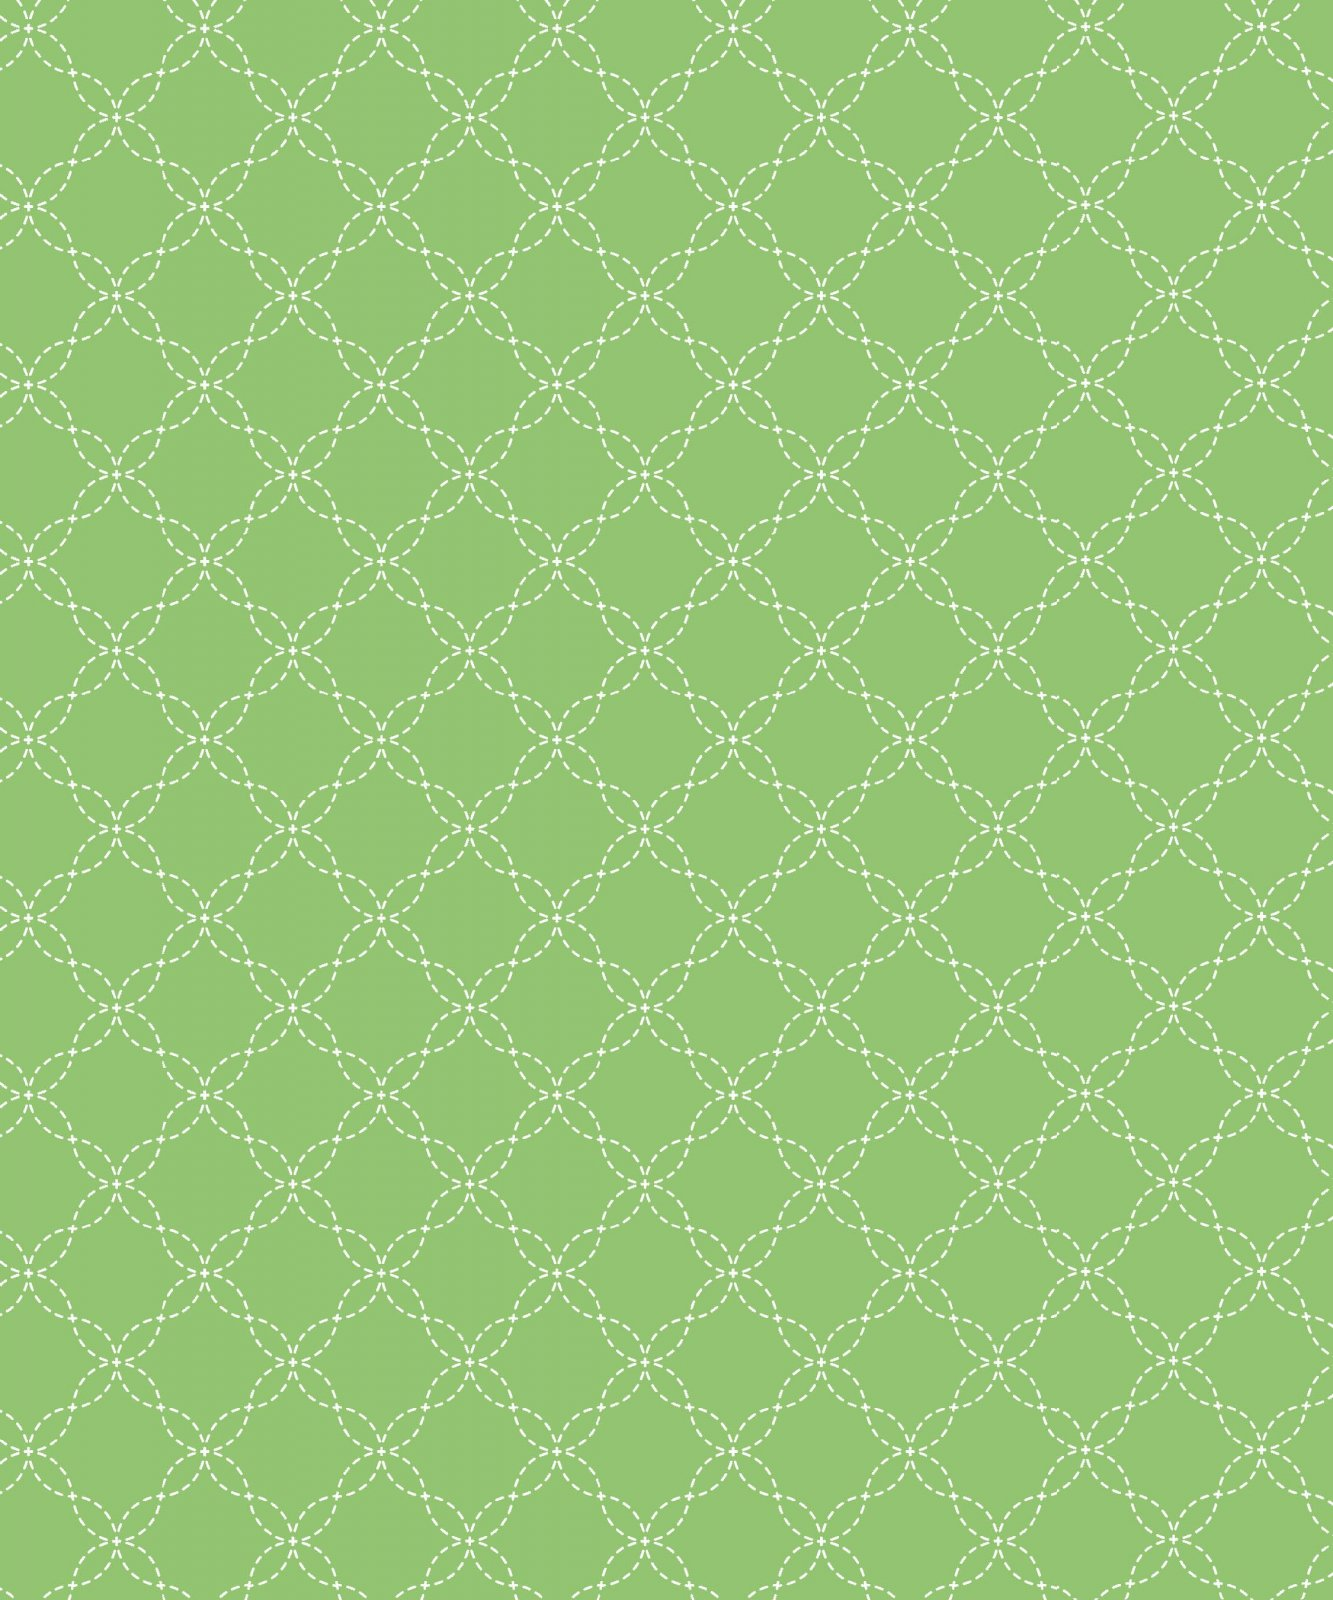 Lil' Sprout Flannel Too Lattice Green F8230G